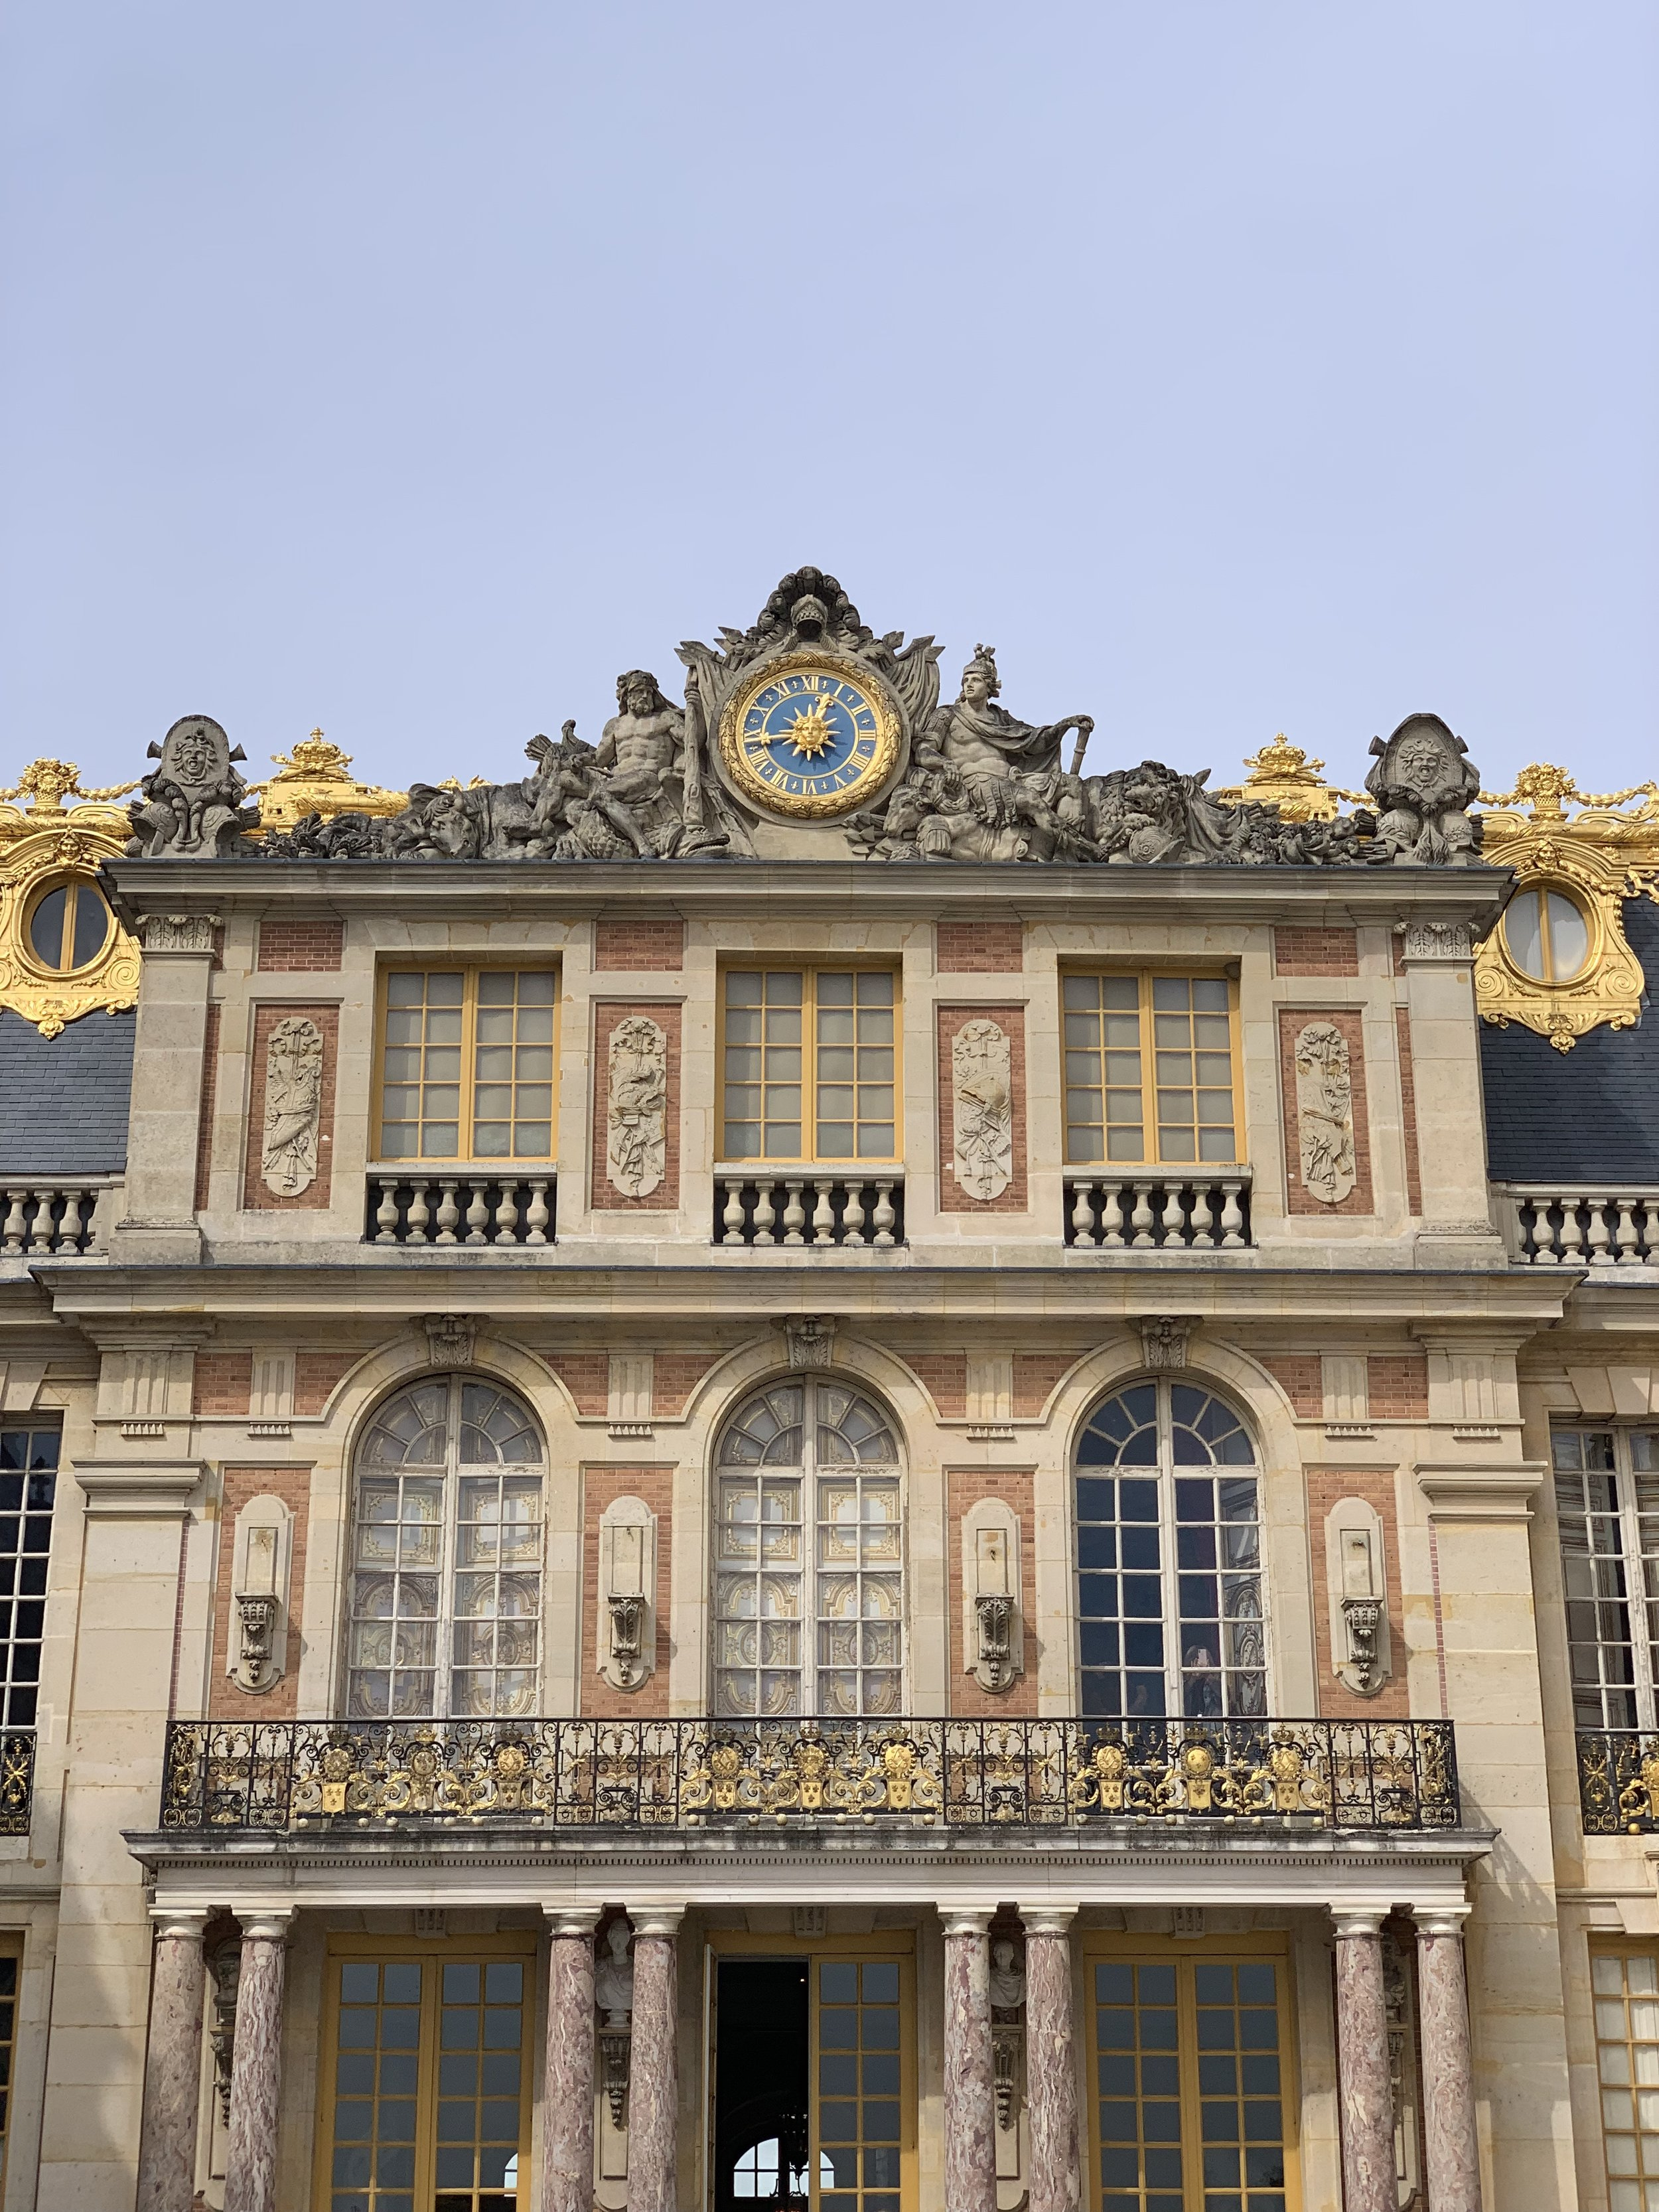 Grand entrance to Palace of Versailles